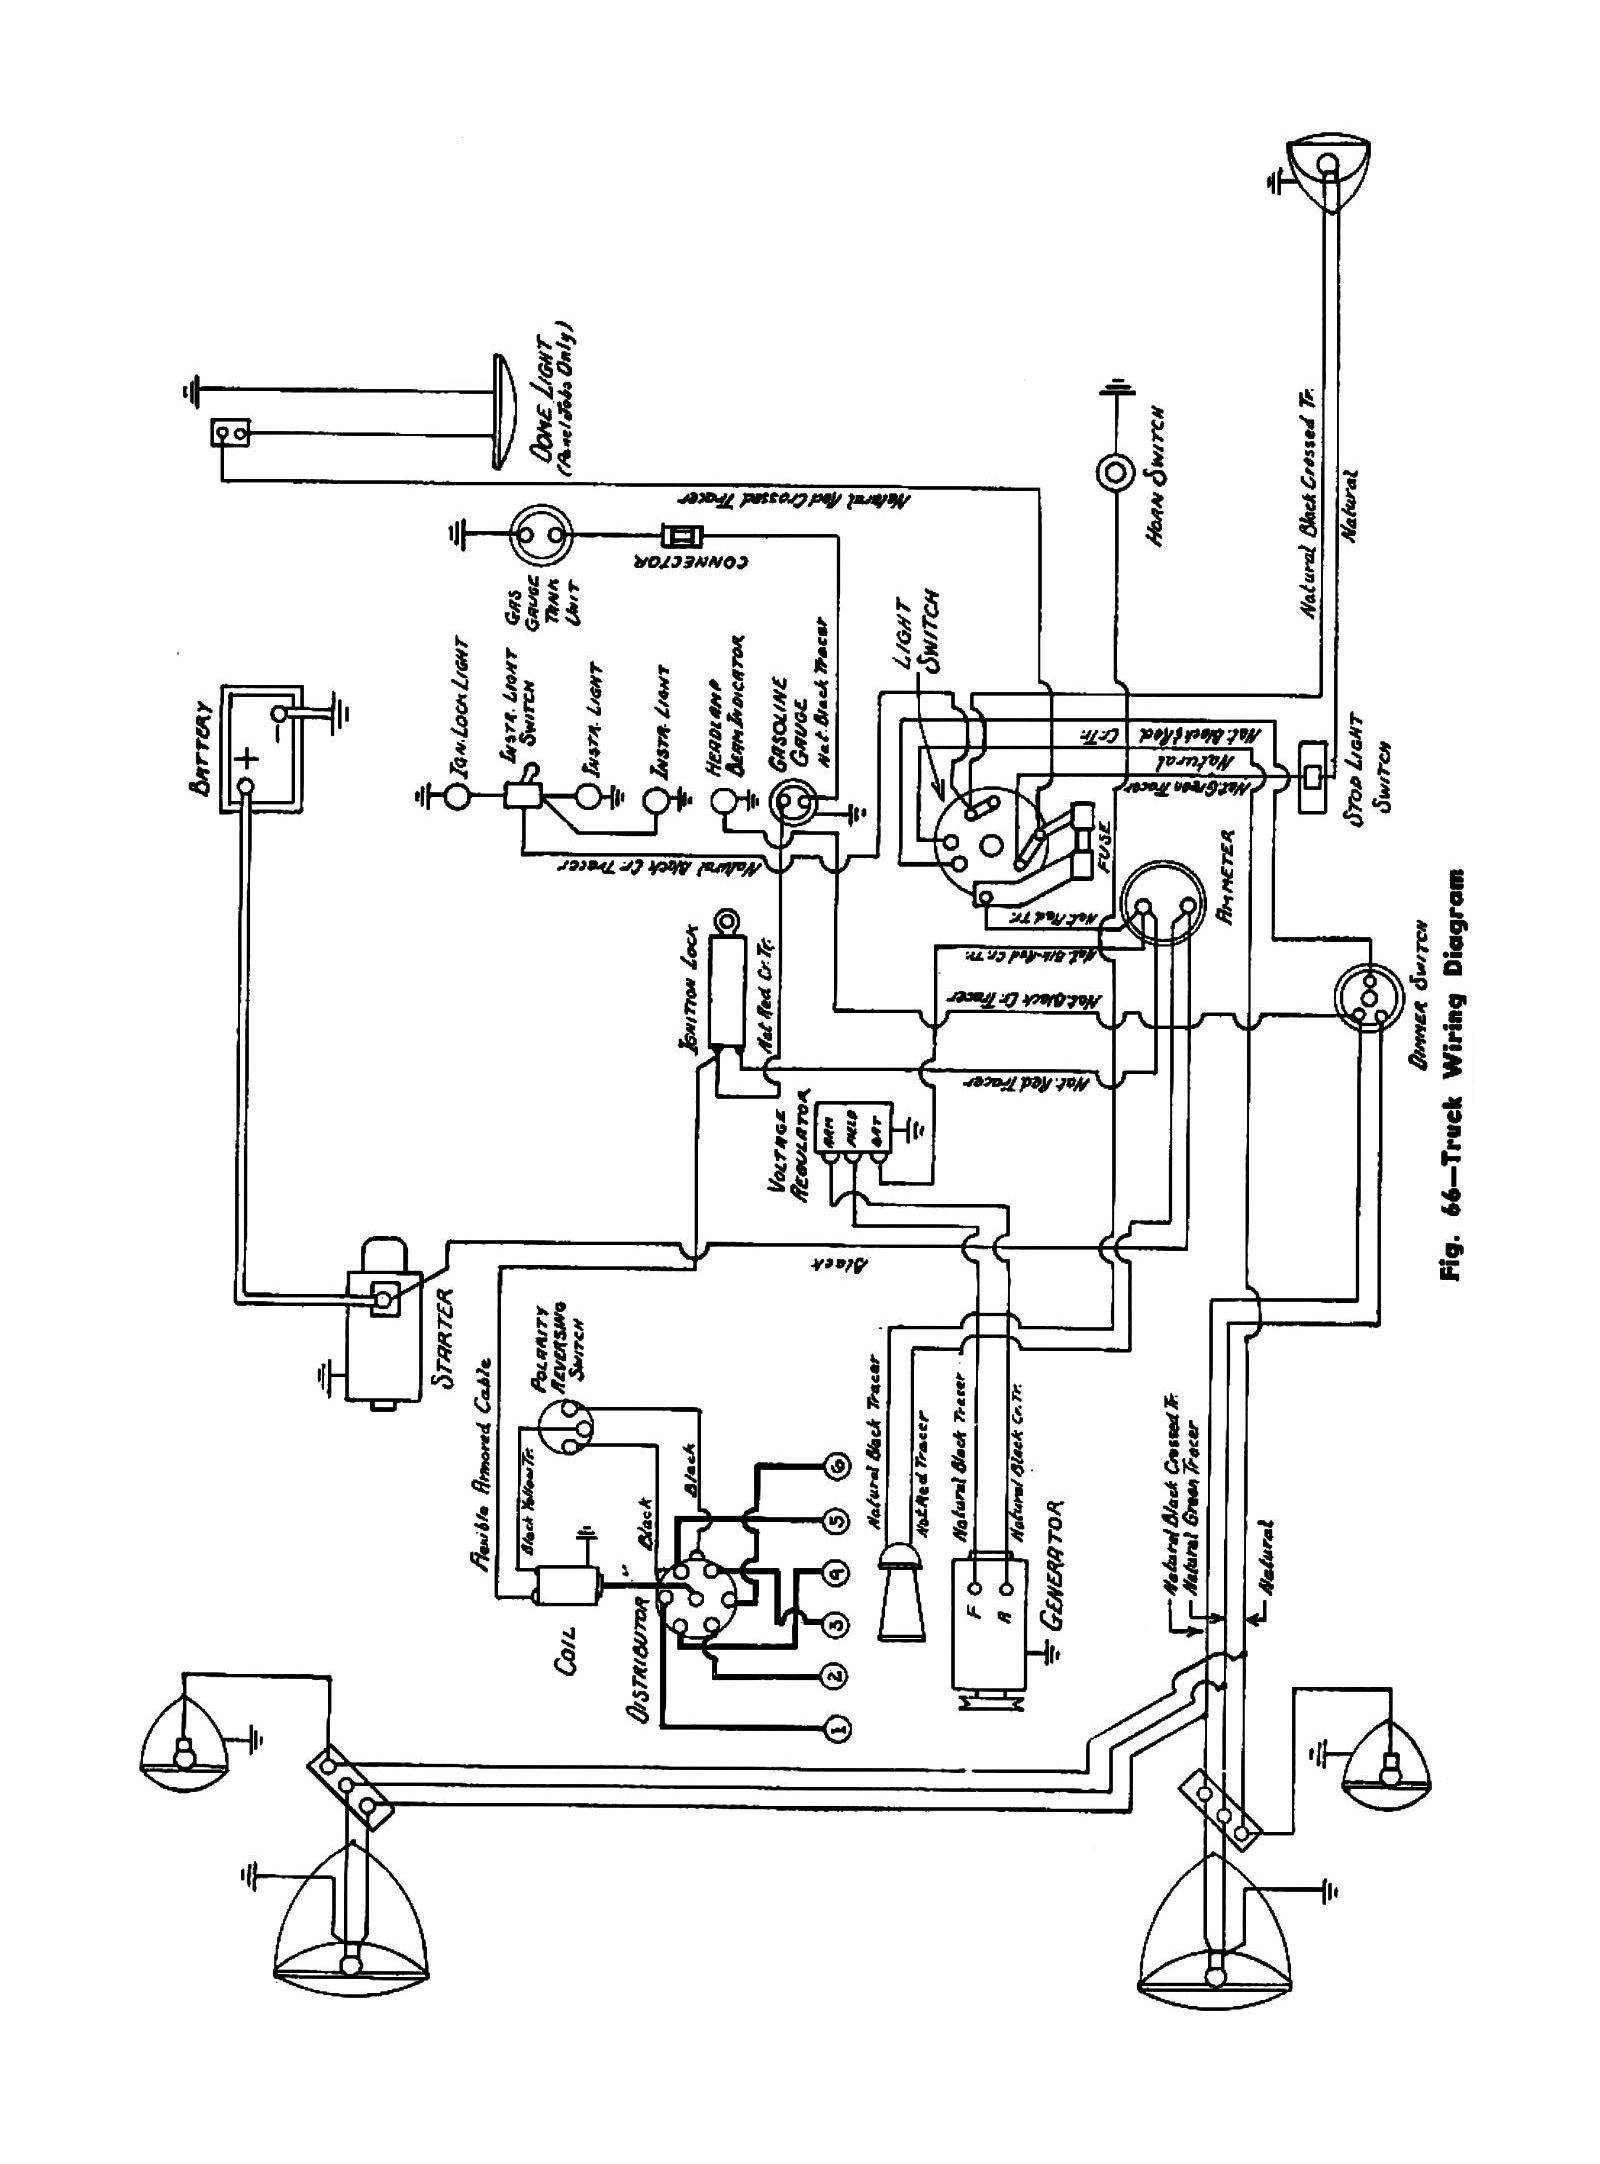 45truck ihc truck wiring diagrams mazda truck wiring diagrams \u2022 free  at eliteediting.co